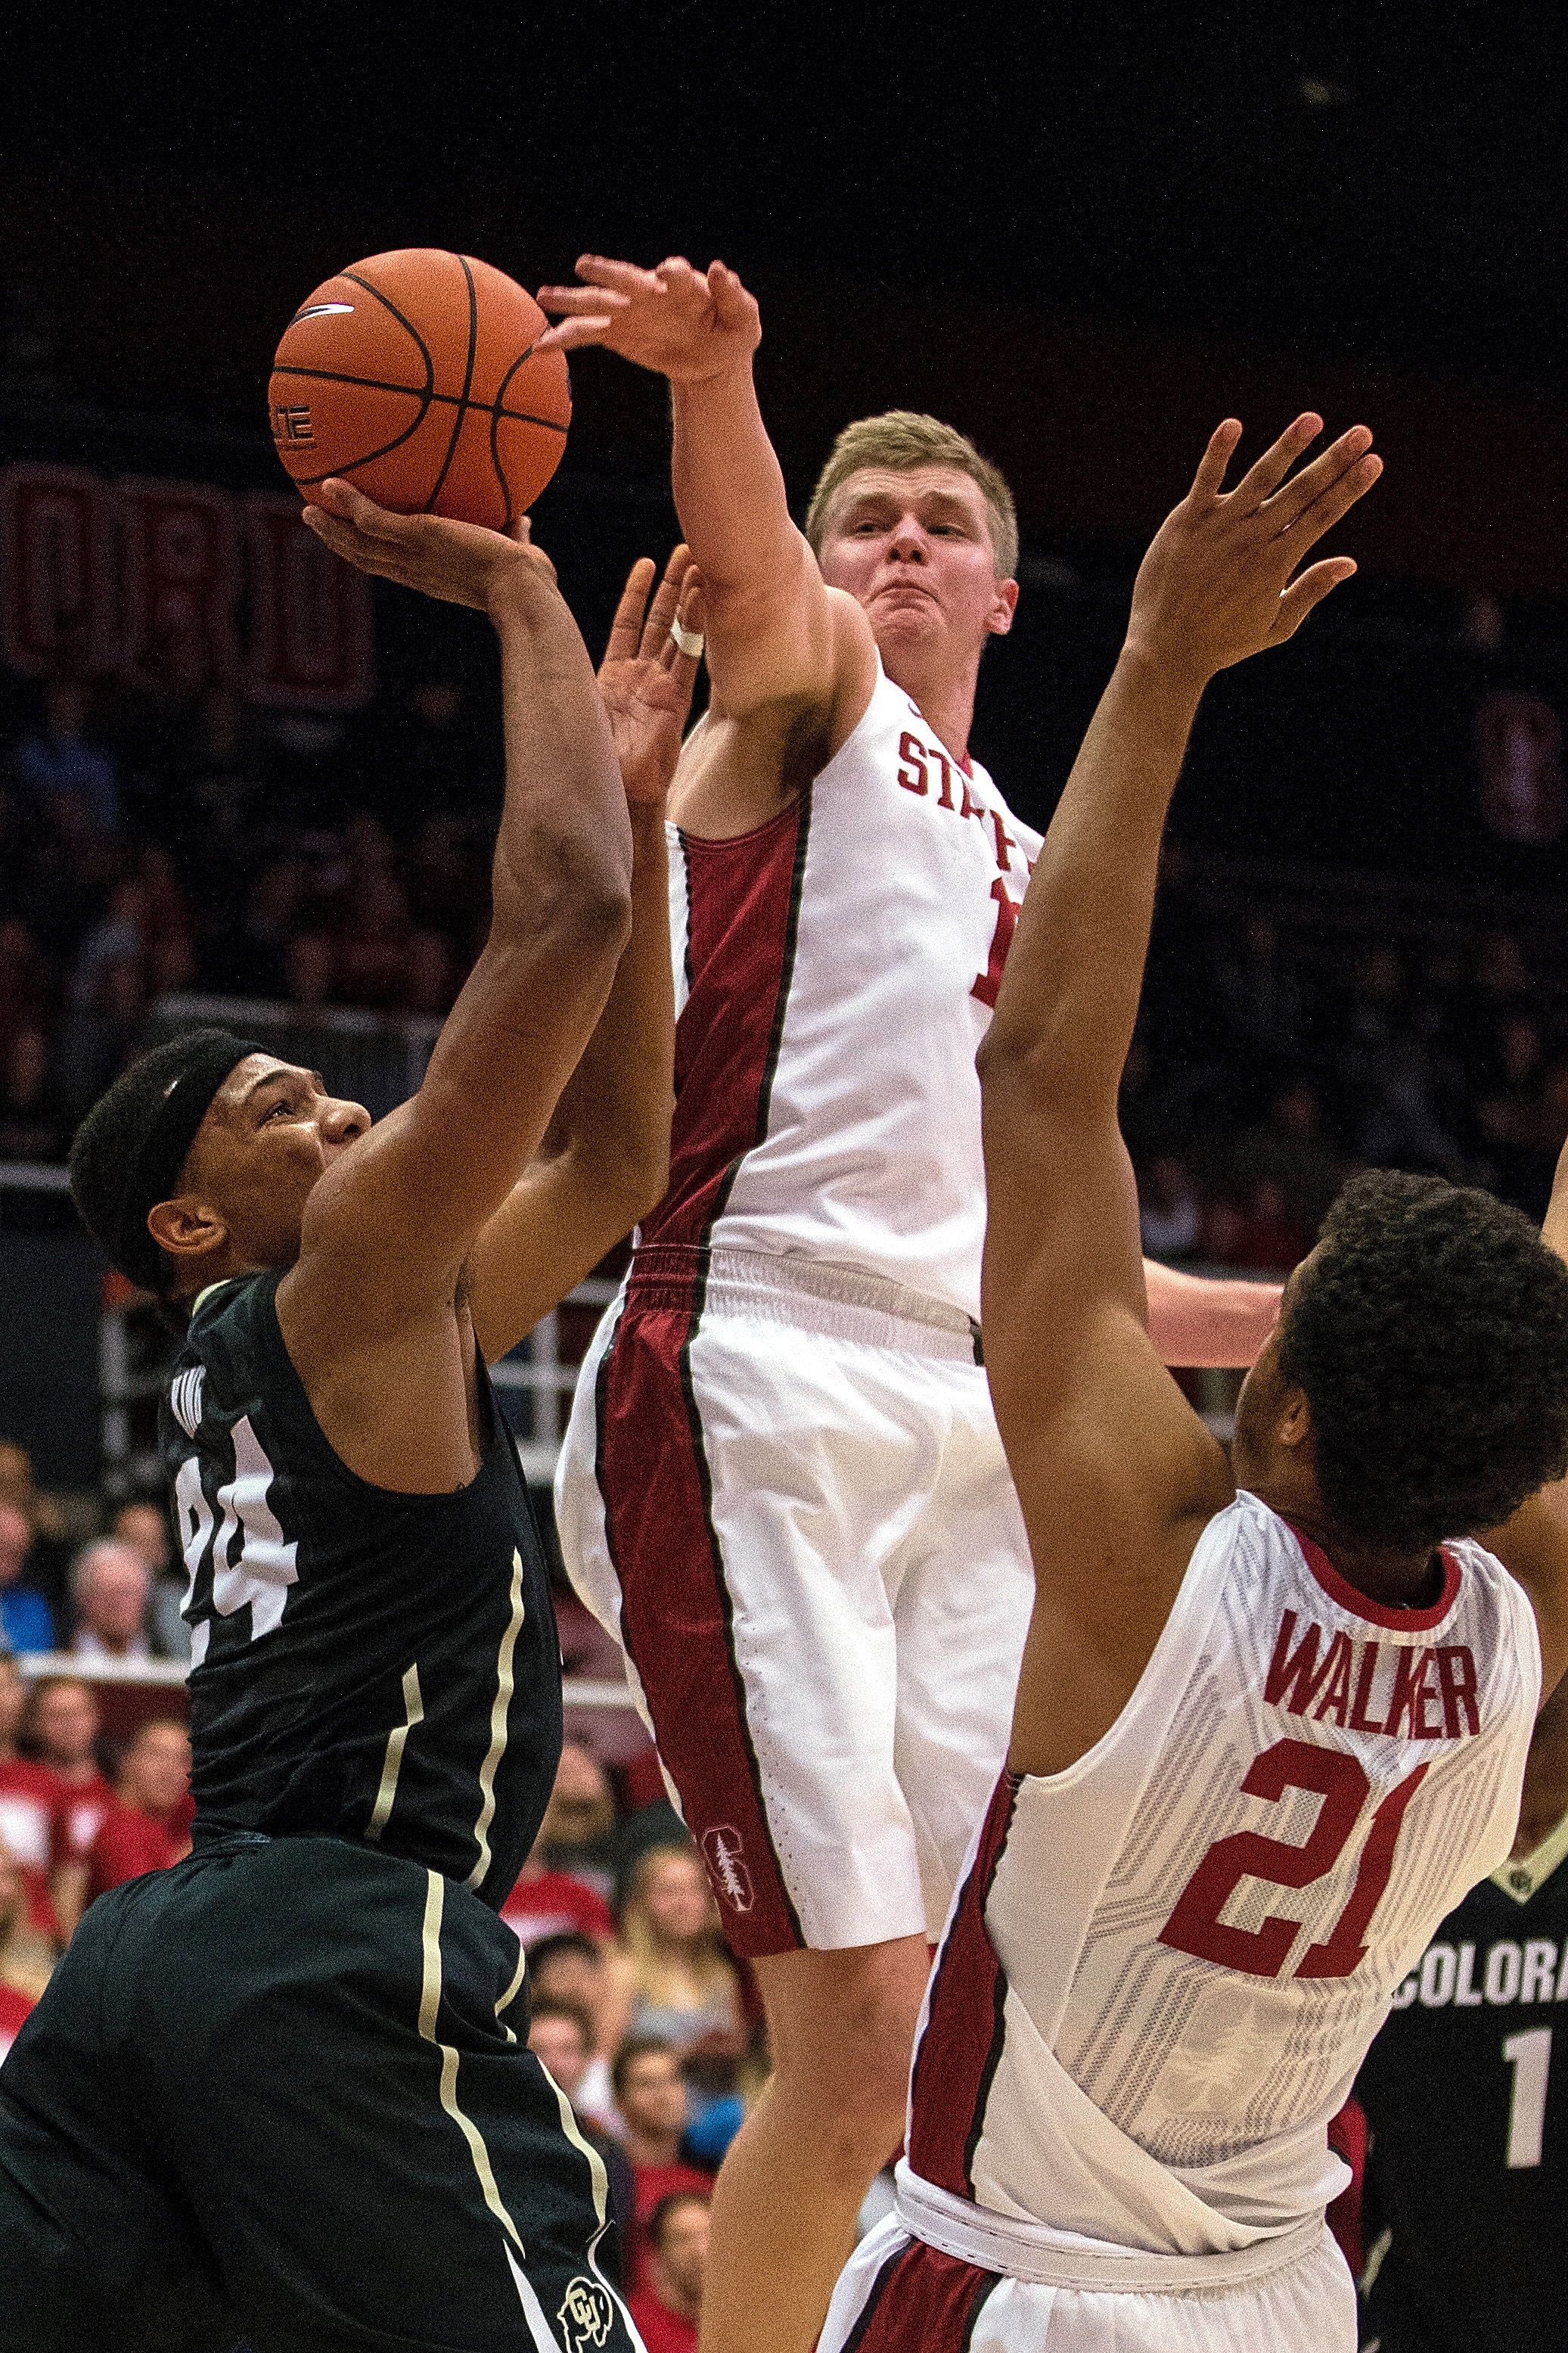 Colorado's George King, left, is defended by Stanford's Michael Humphrey, center, and Cameron Walker, left, during the first half of an NCAA college basketball game in Stanford, Calif., Sunday, Jan. 3, 2016. (AP Photo/Jason O. Watson)